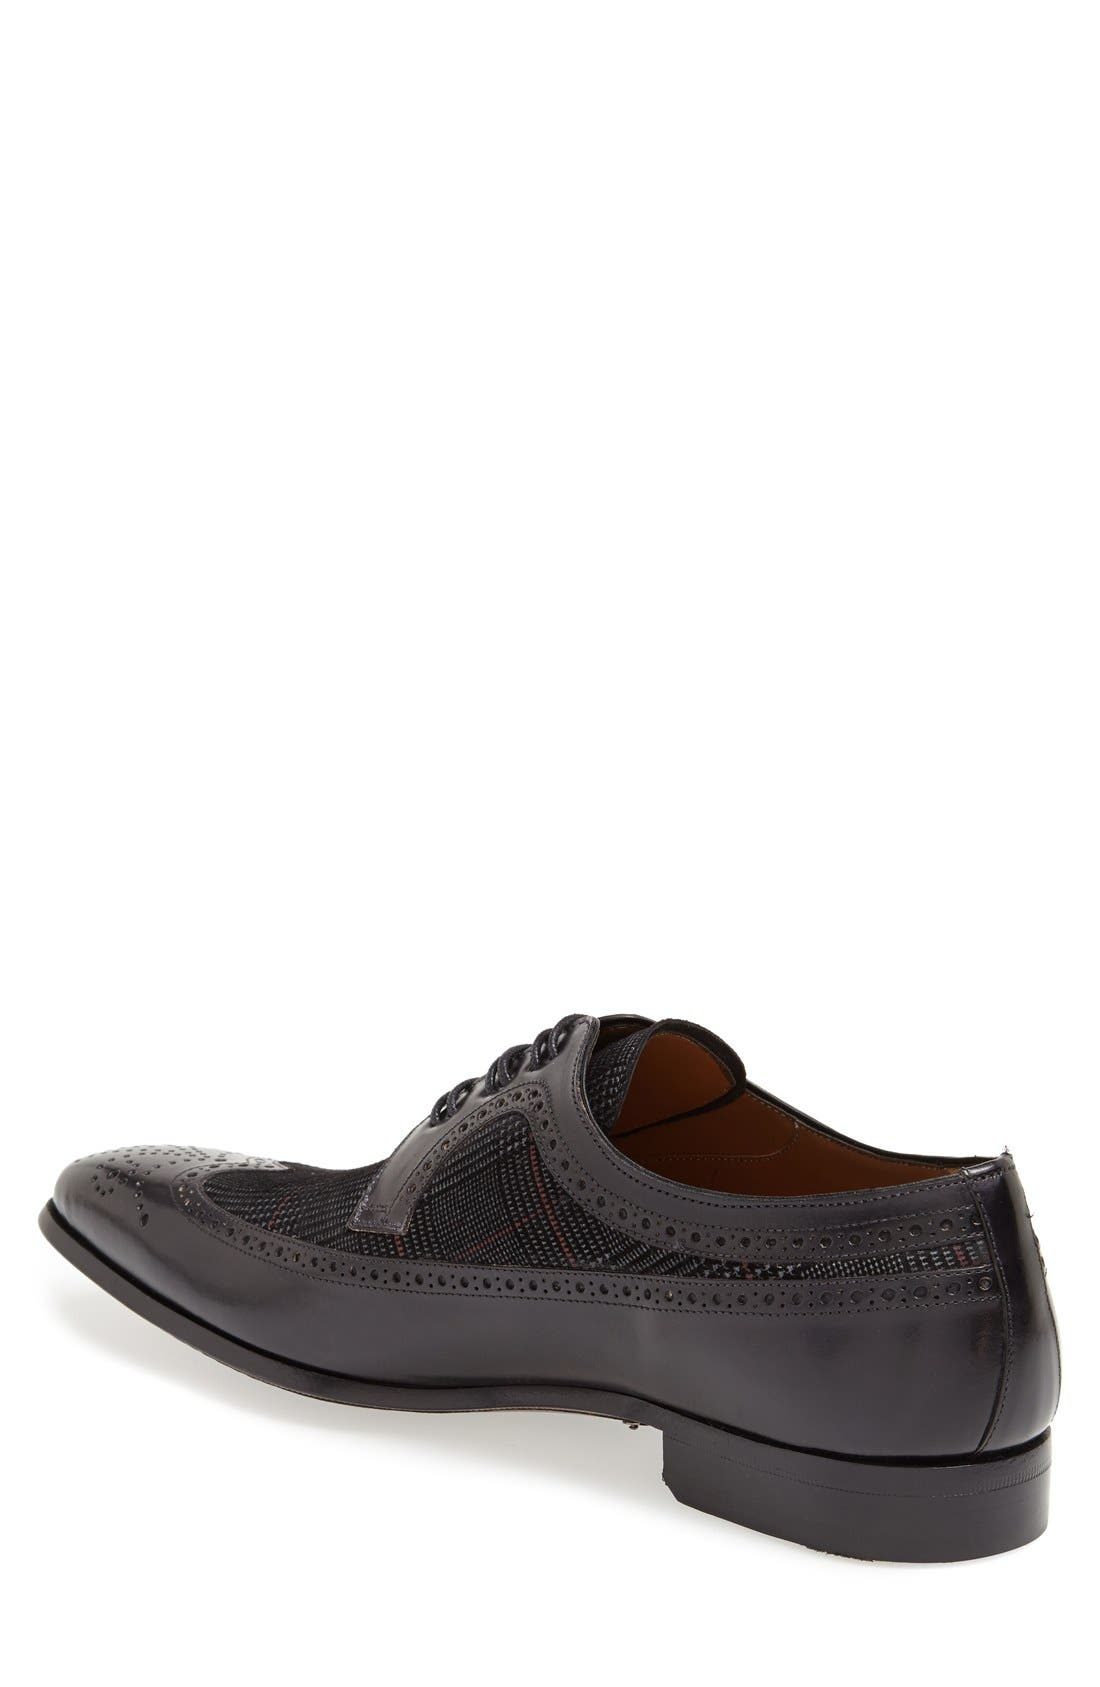 'Johann' Spectator Shoe,                             Alternate thumbnail 2, color,                             Black/ Grey